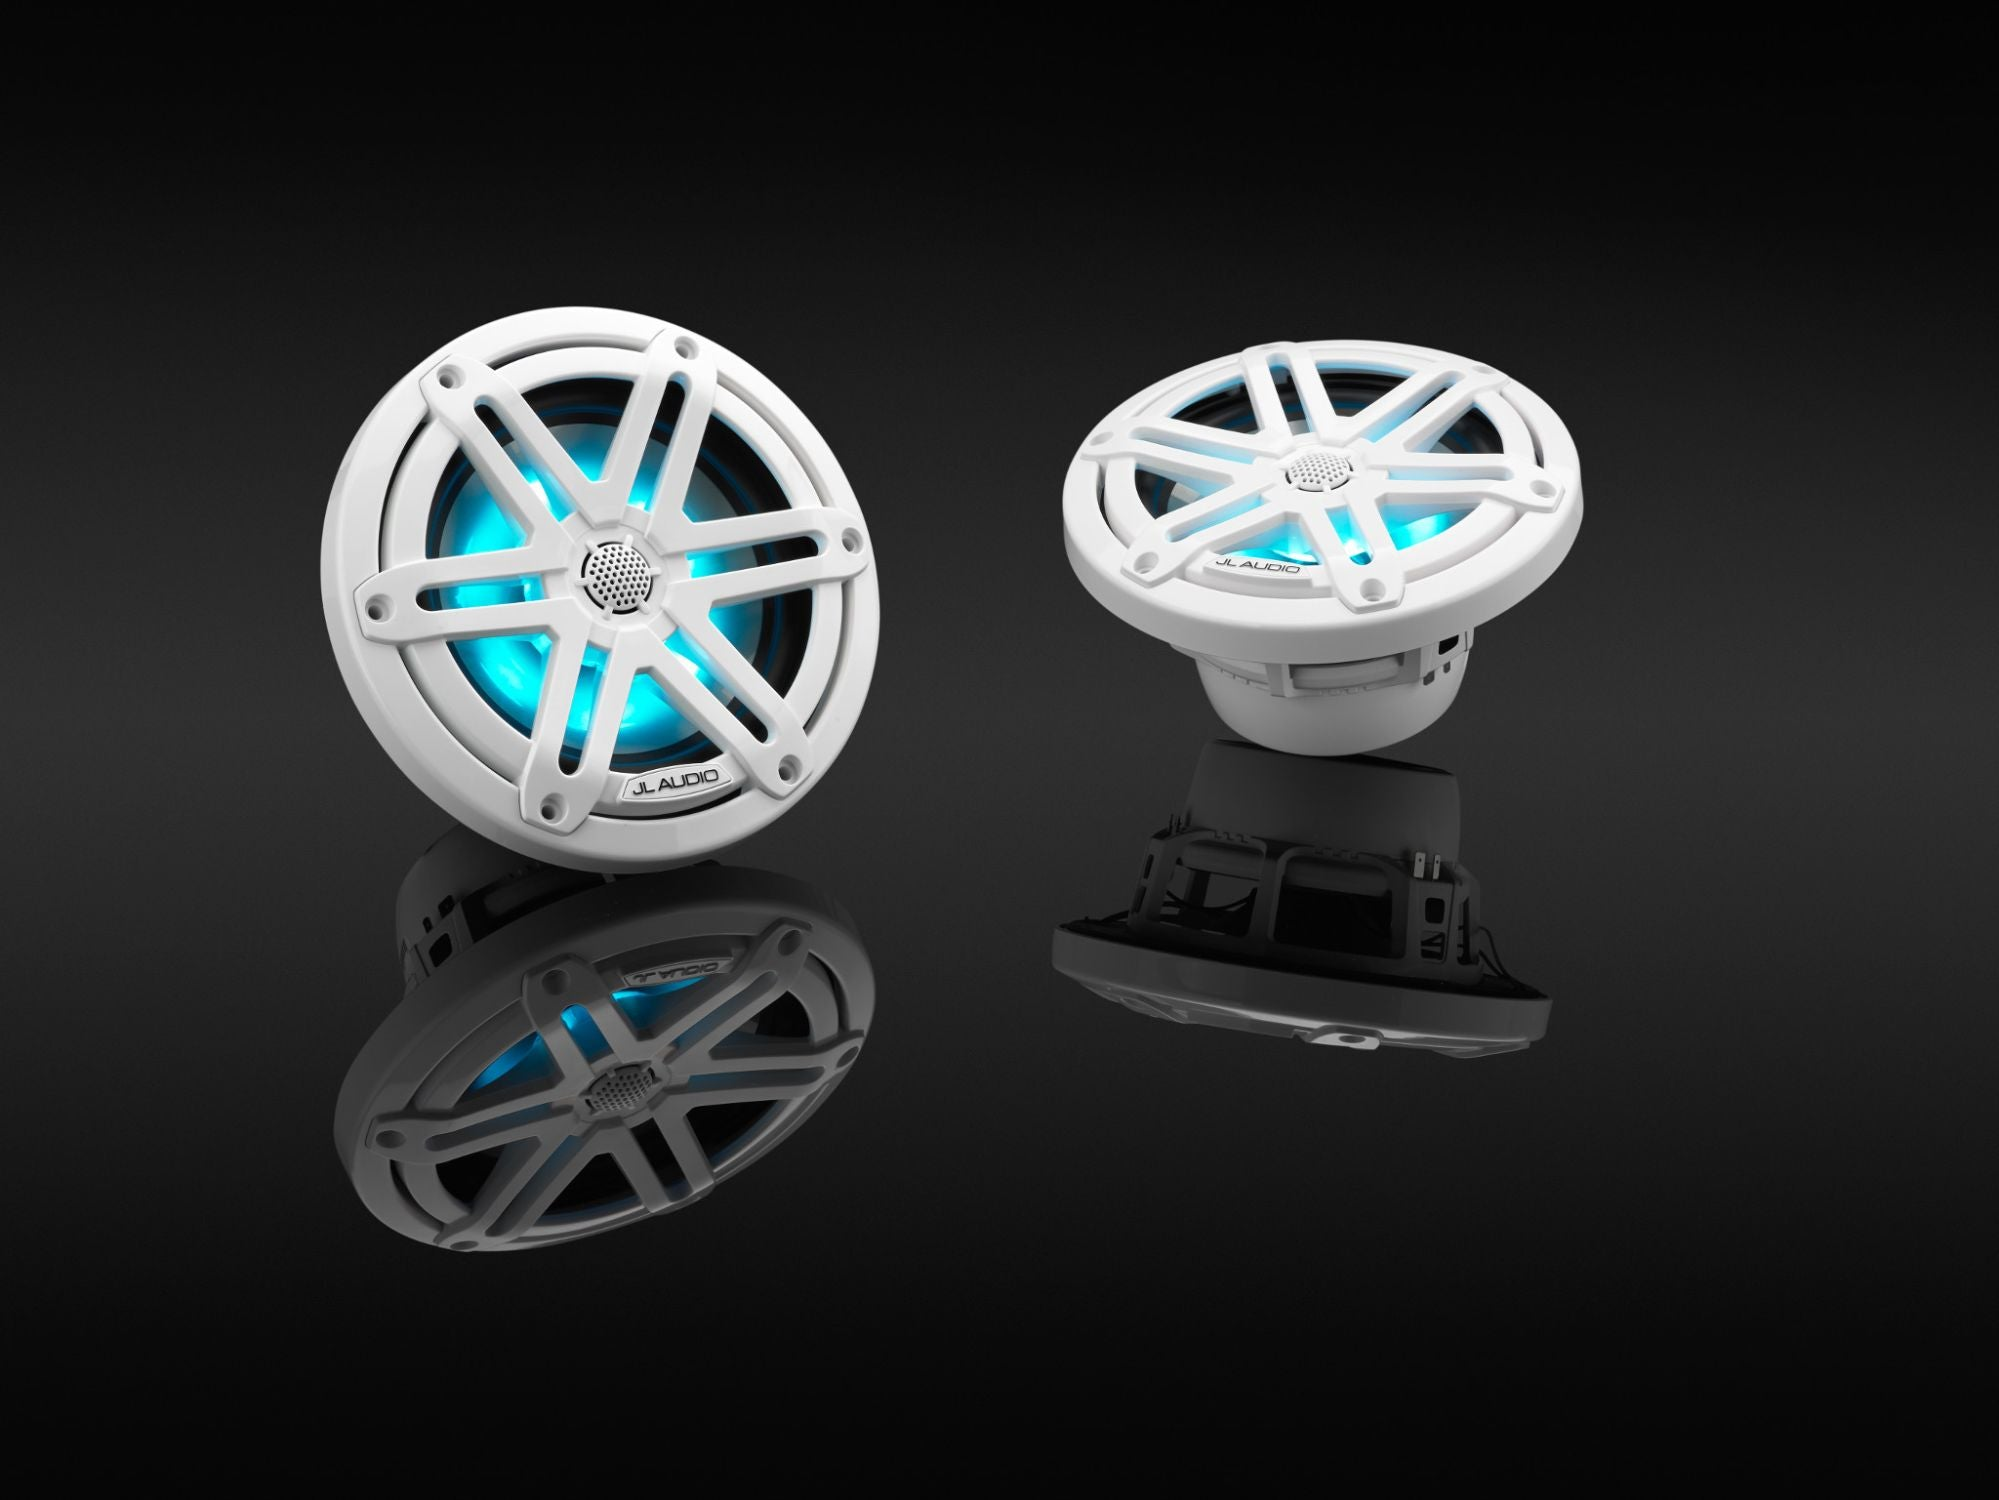 Pair of M3-650X-S-Gw-i Coaxial Speaker on Black, Lit Blue